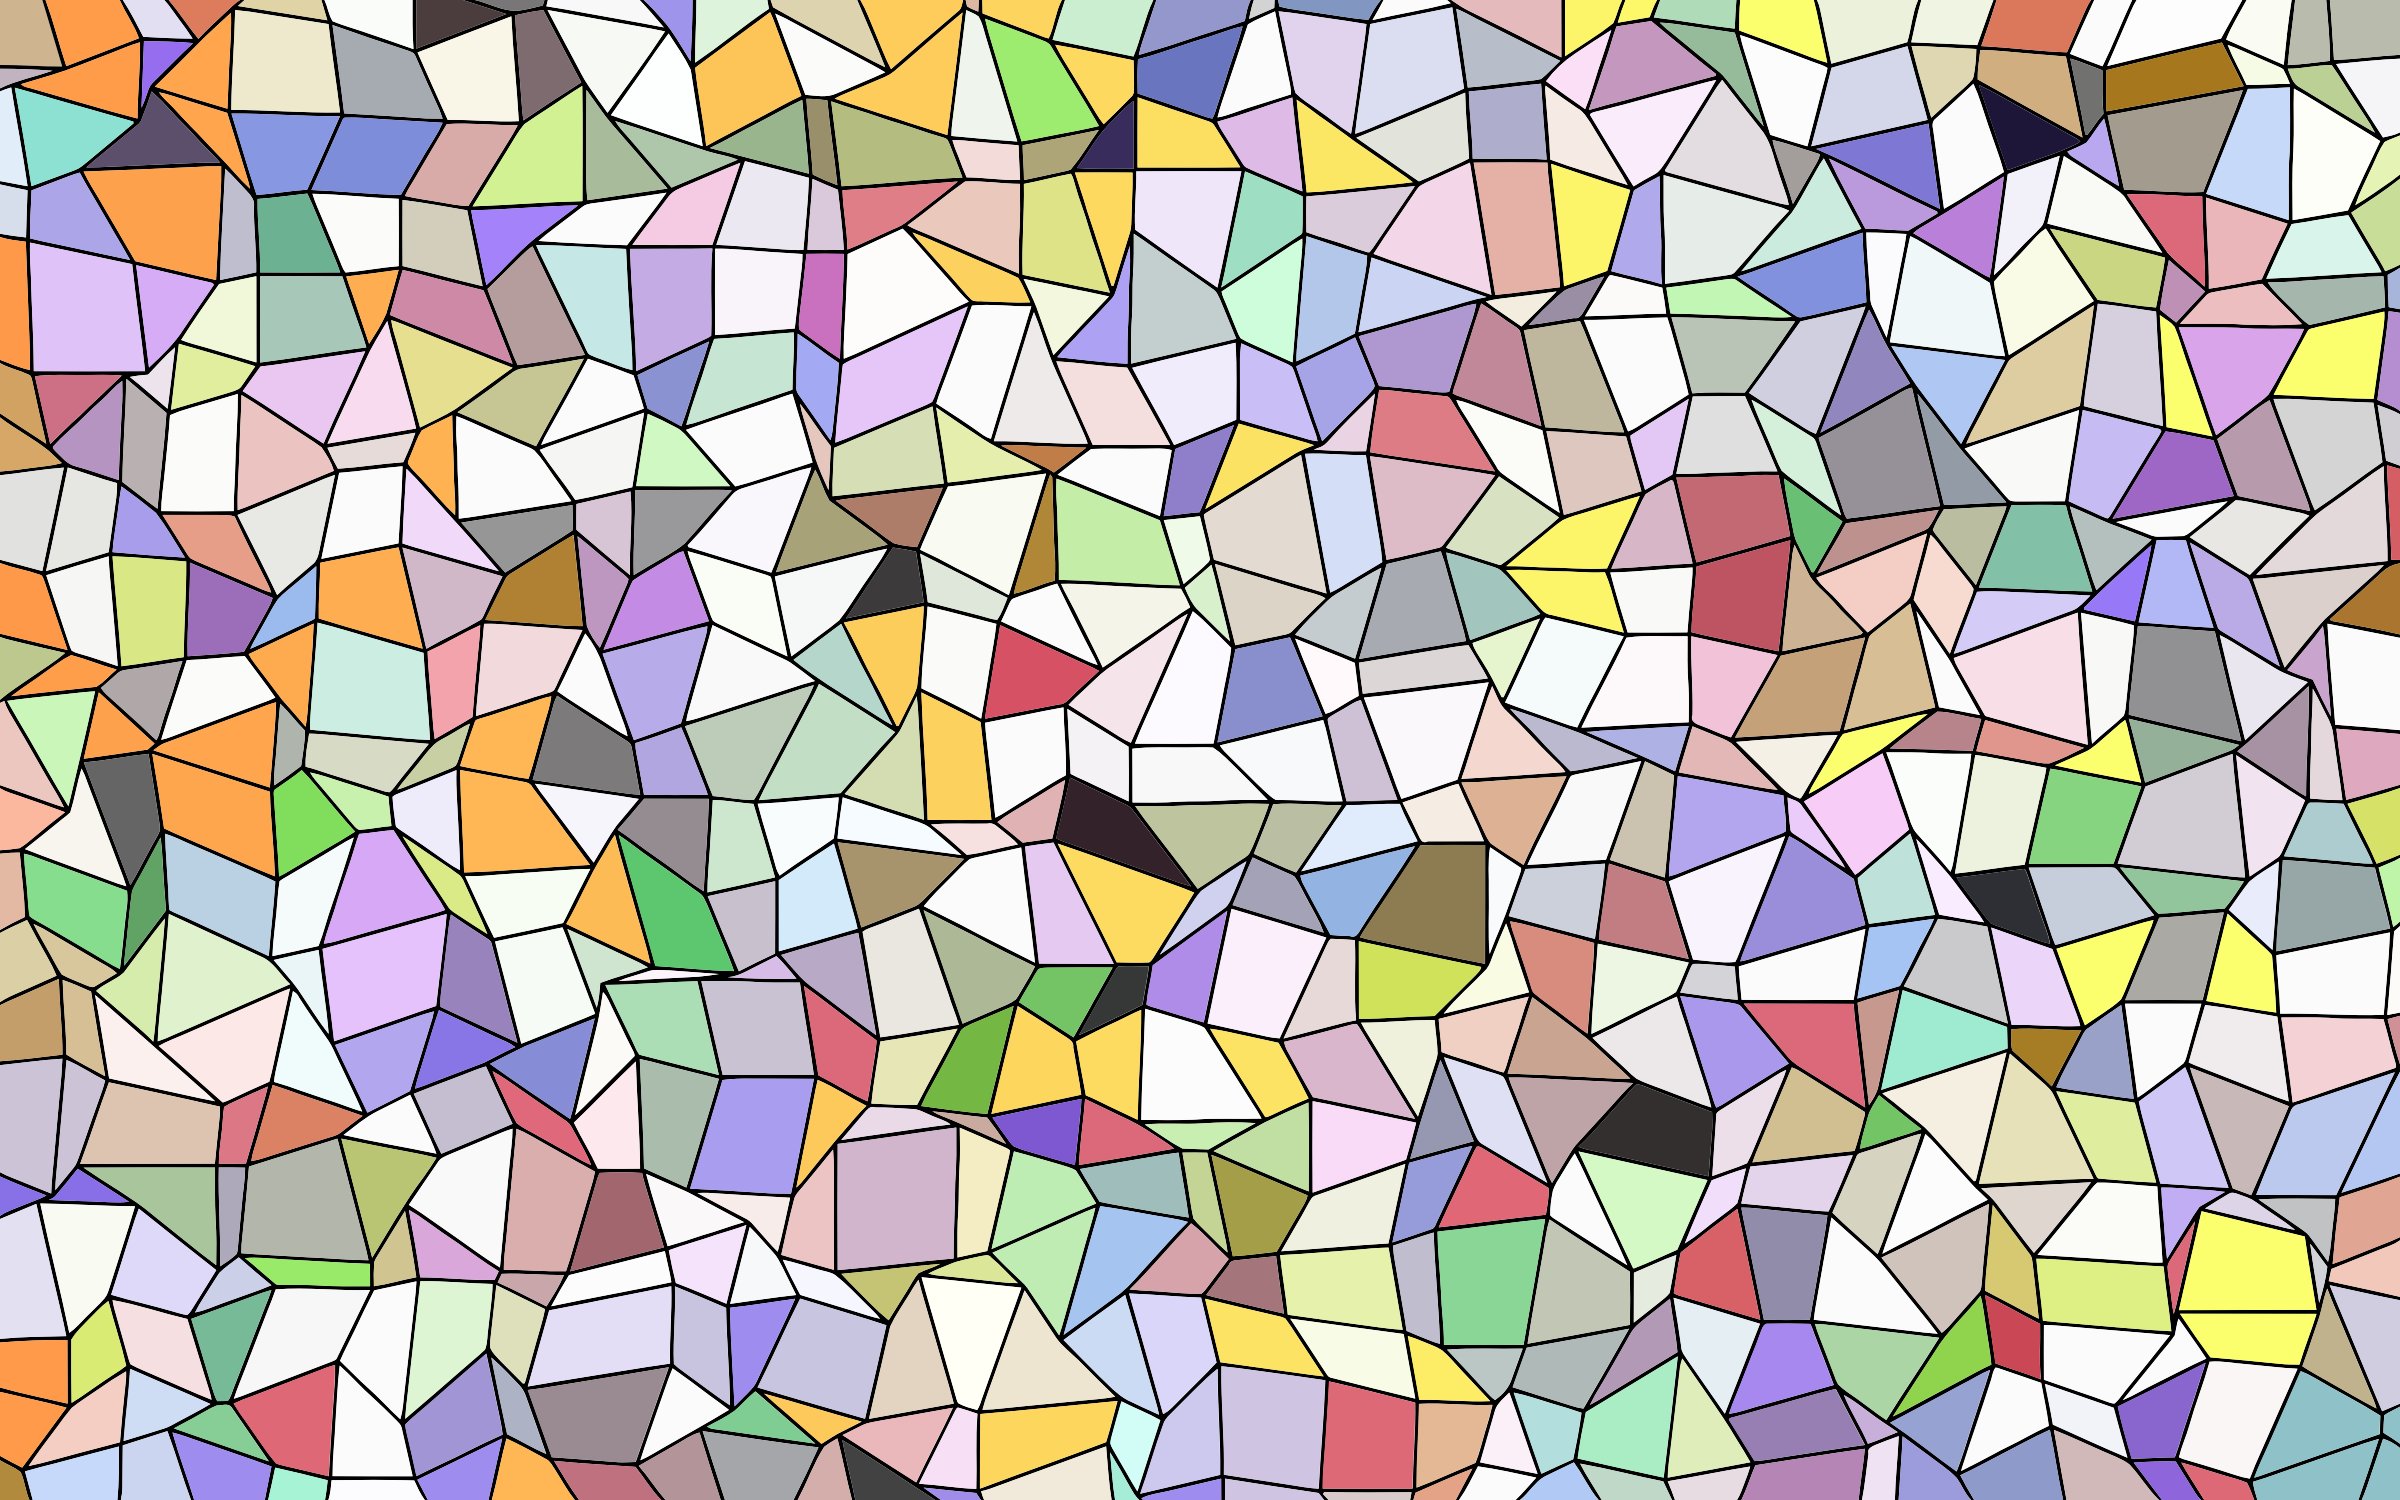 Mosaic background 2 by Firkin